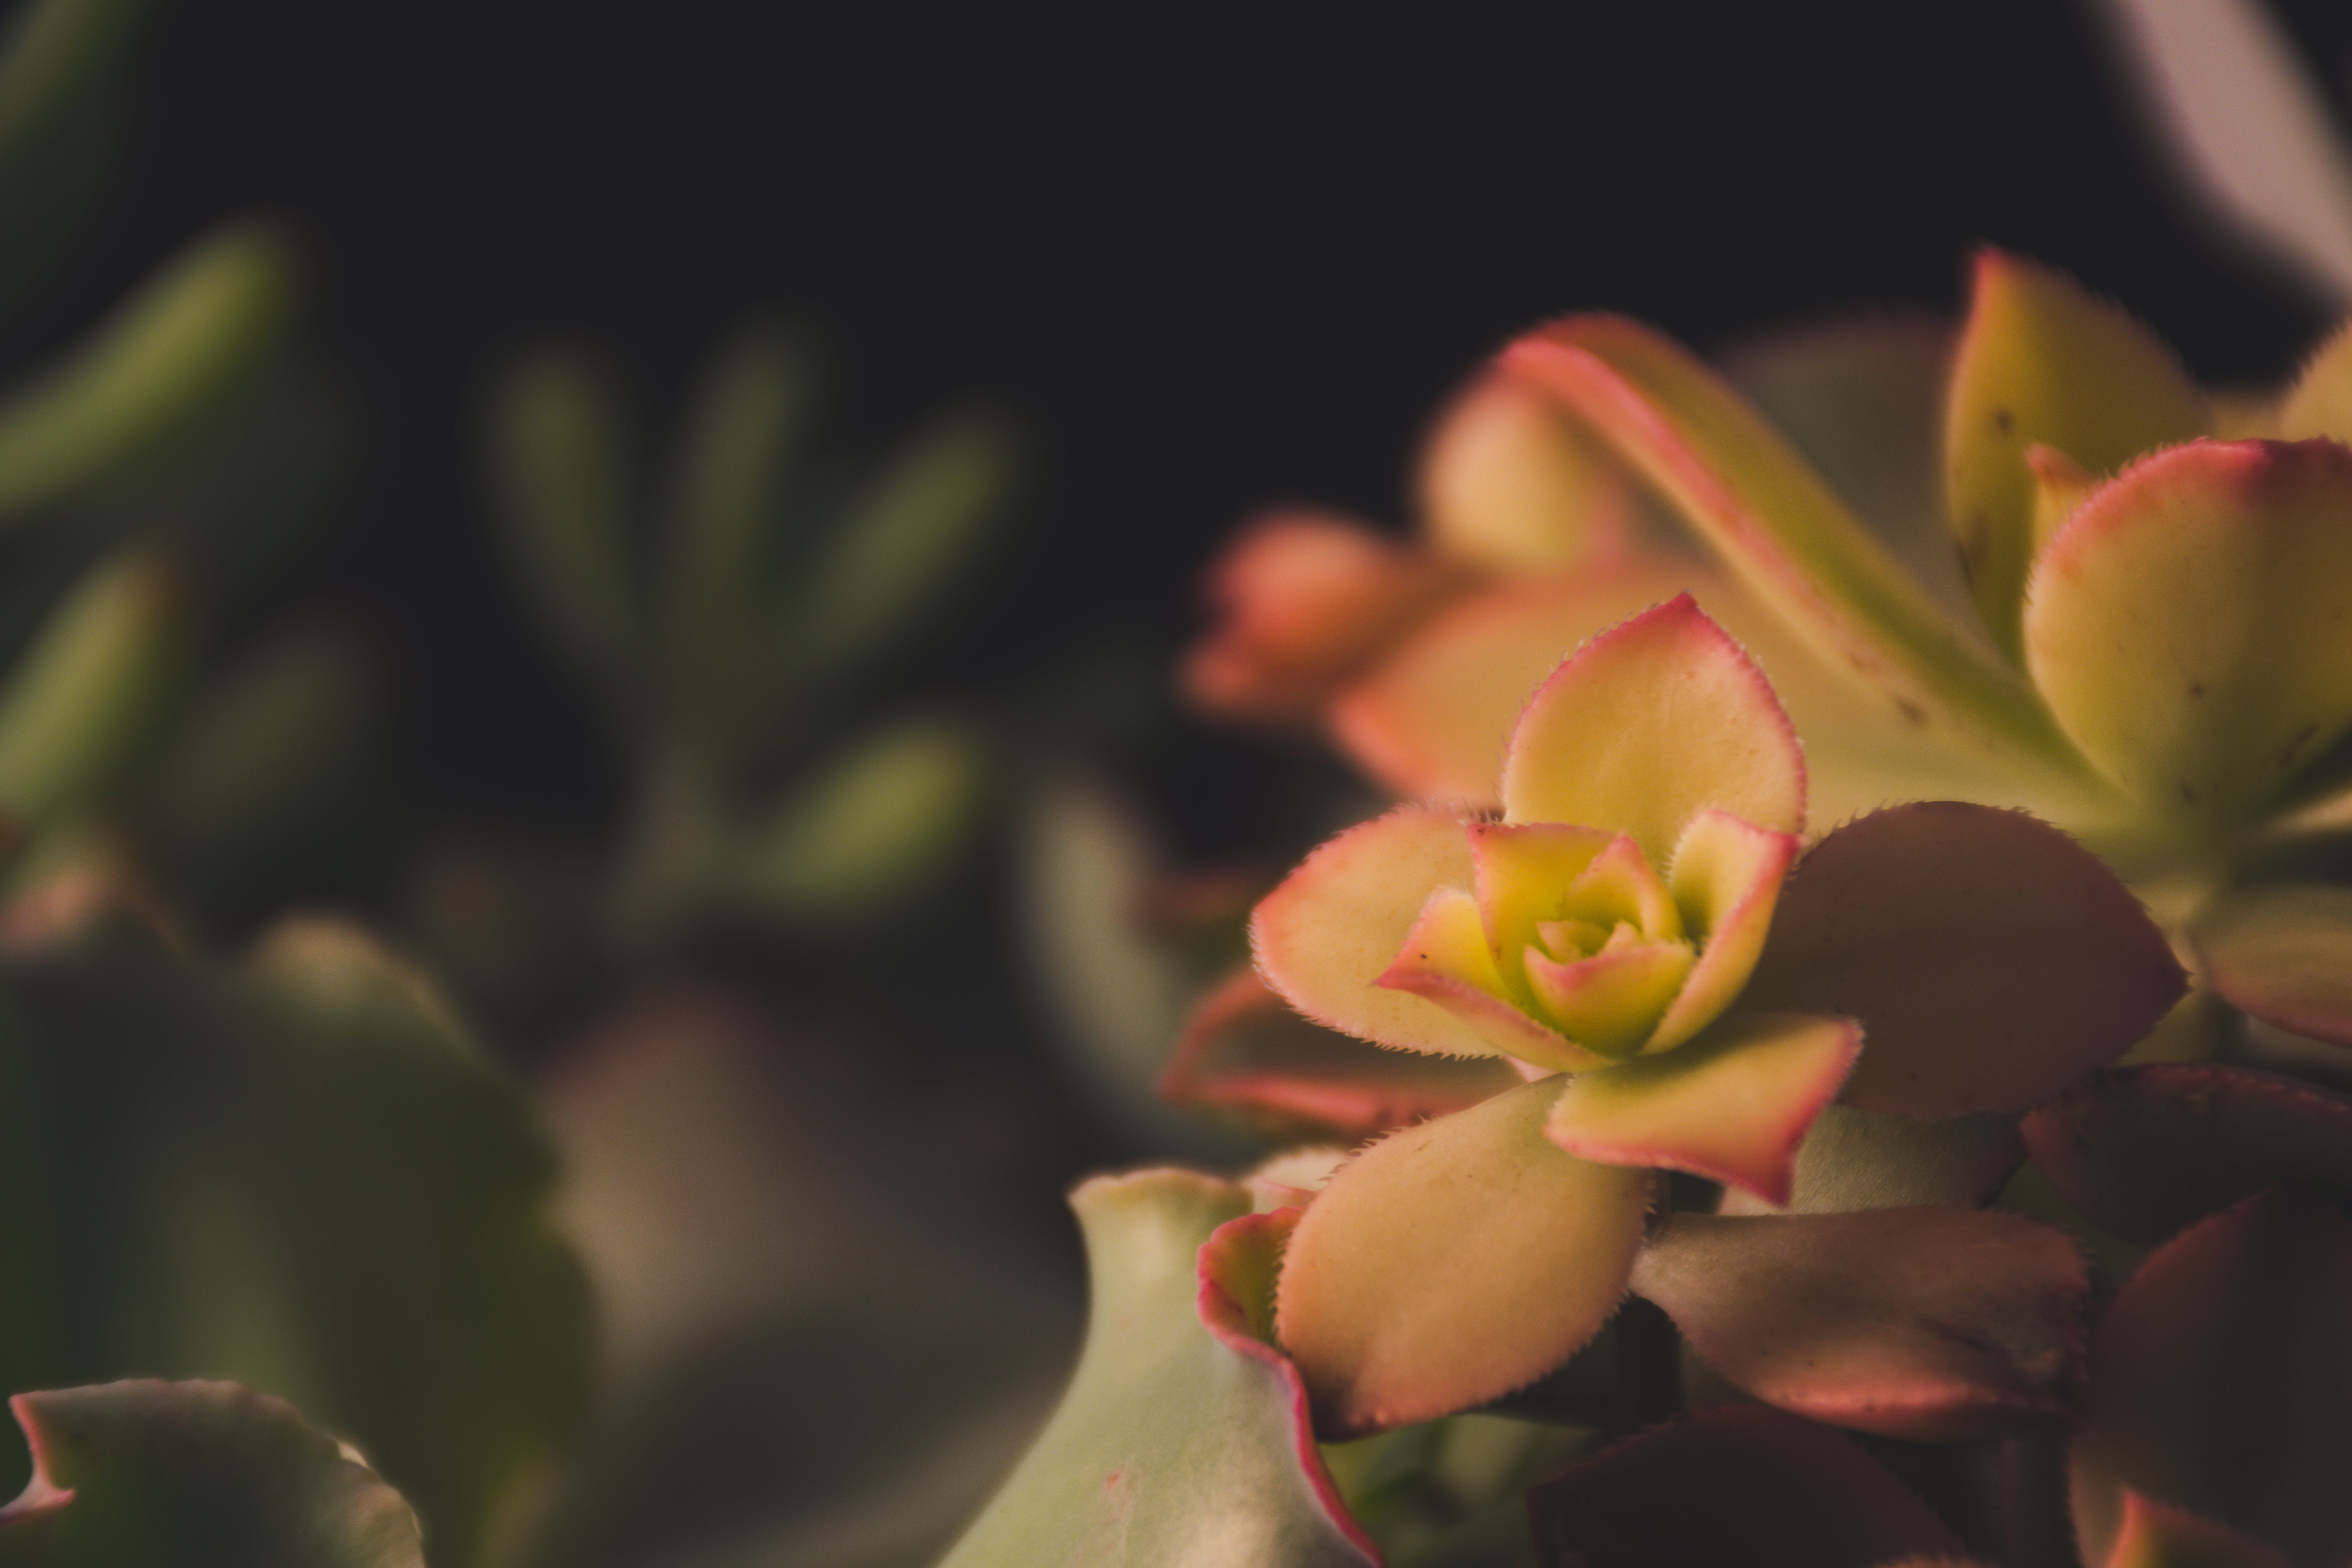 Focus Photography of Green Petaled Flowers